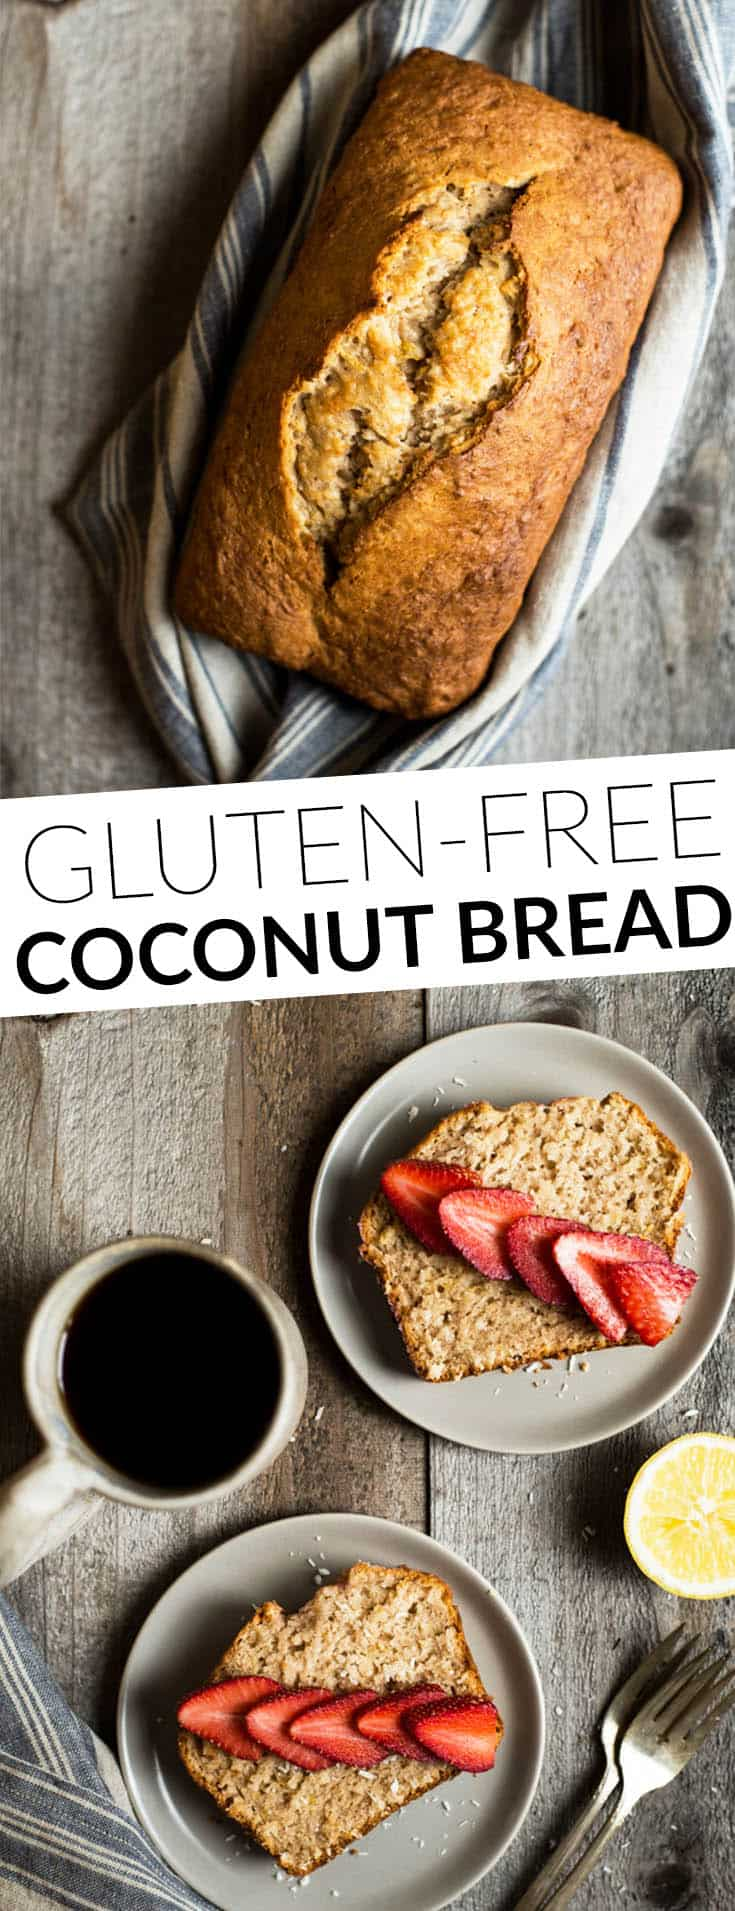 Easy Gluten-Free Coconut Bread with Lemon - perfect for breakfast or dessert! by @healthynibs